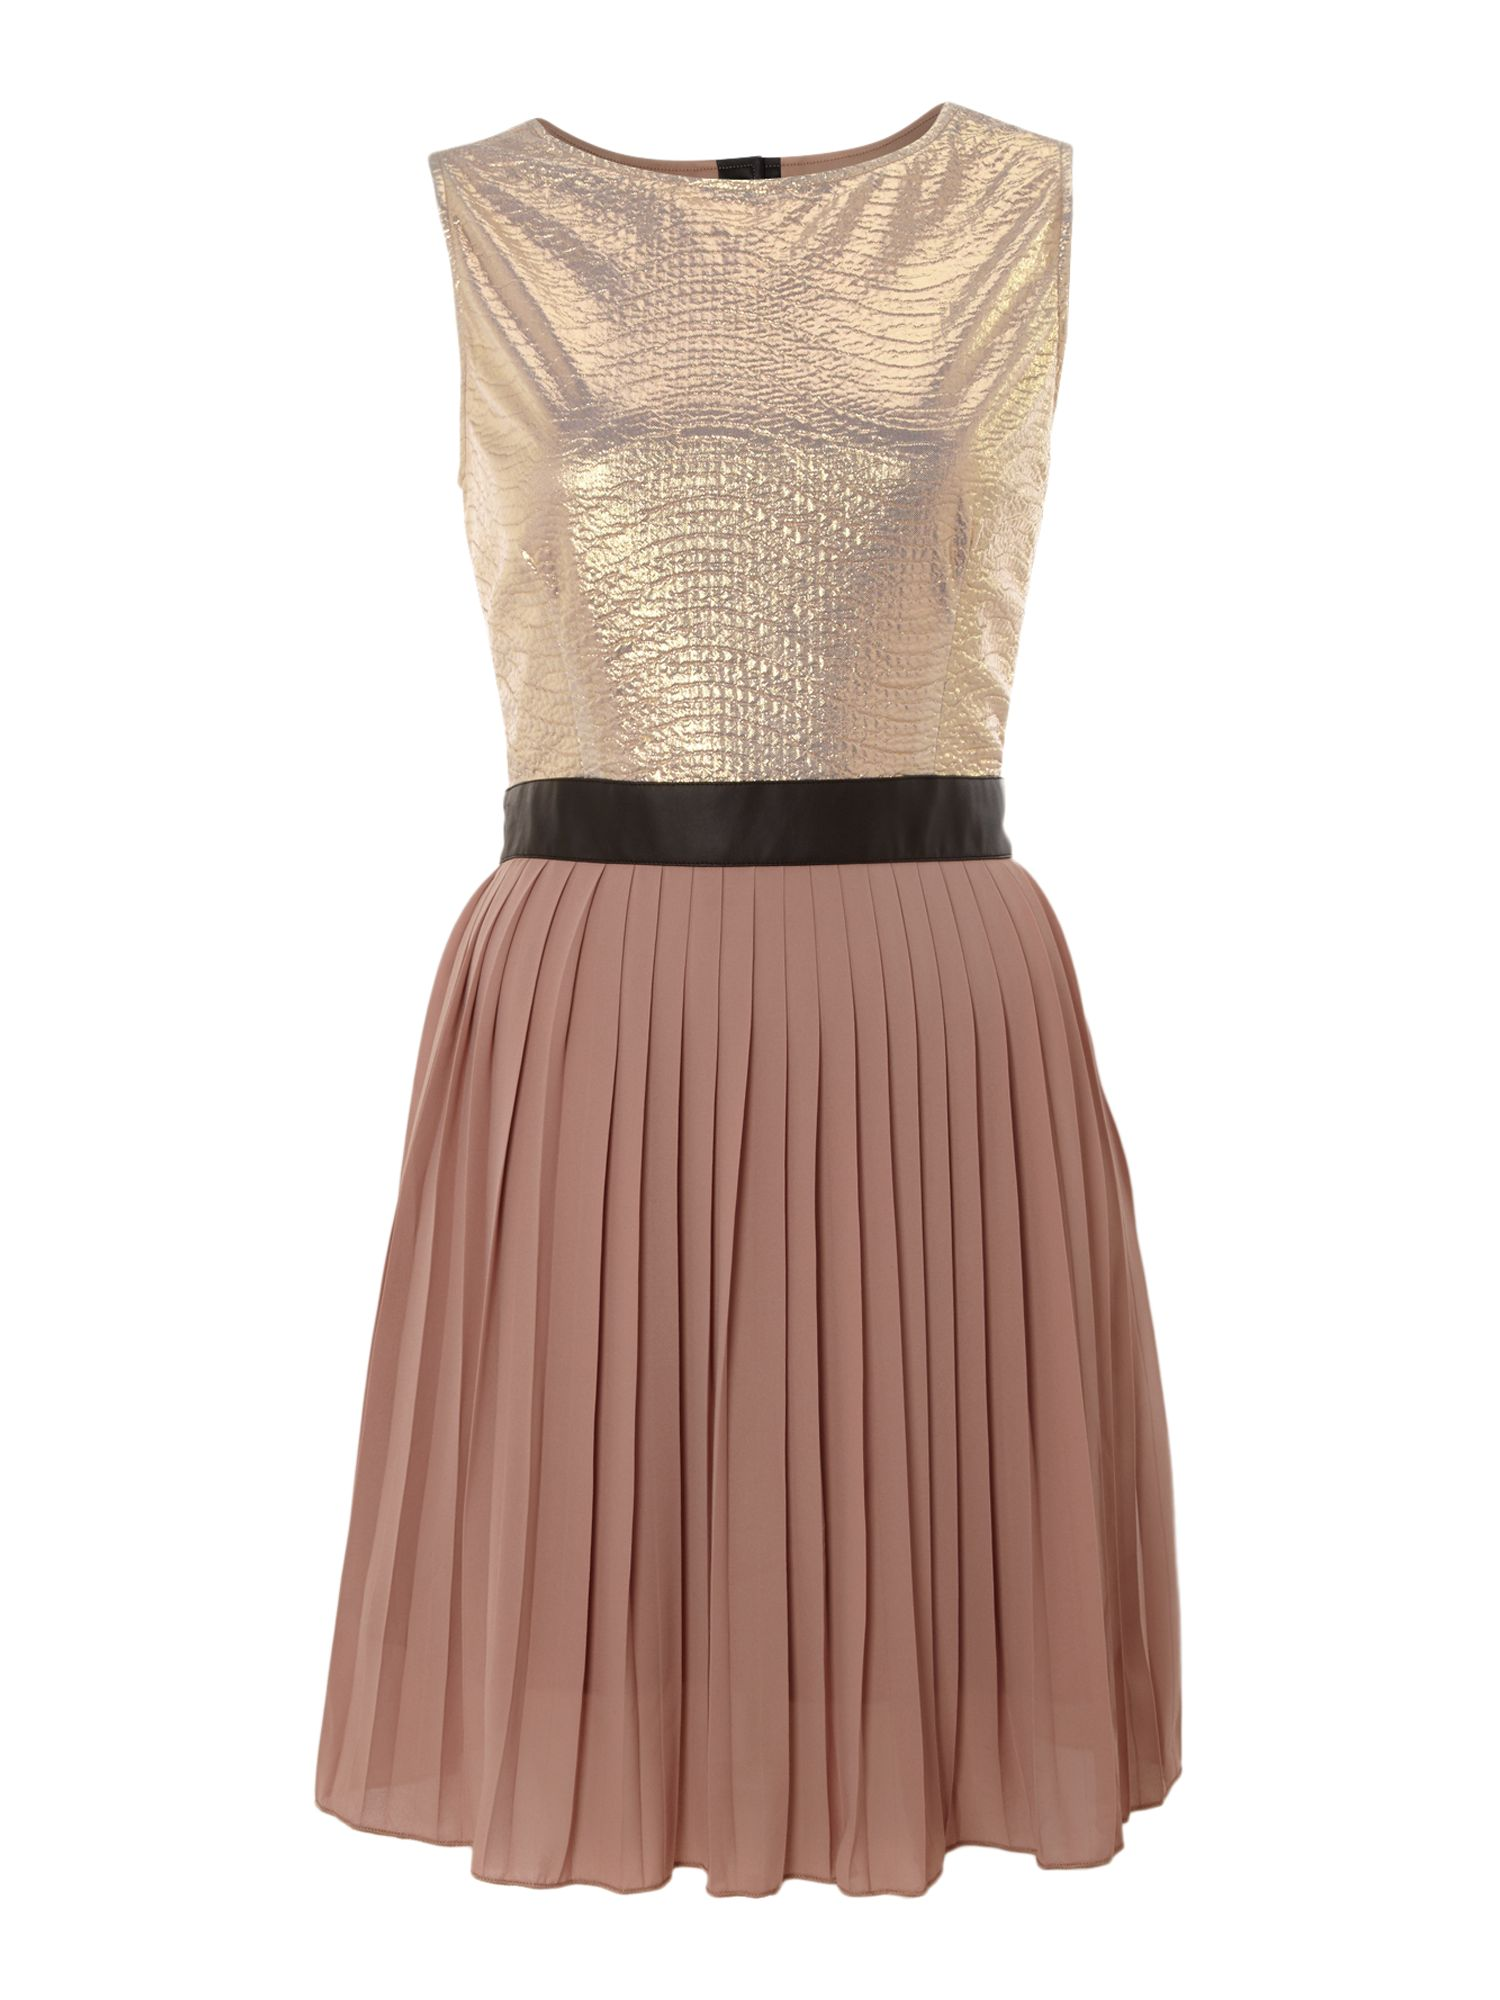 Metallic sheen pleated dress